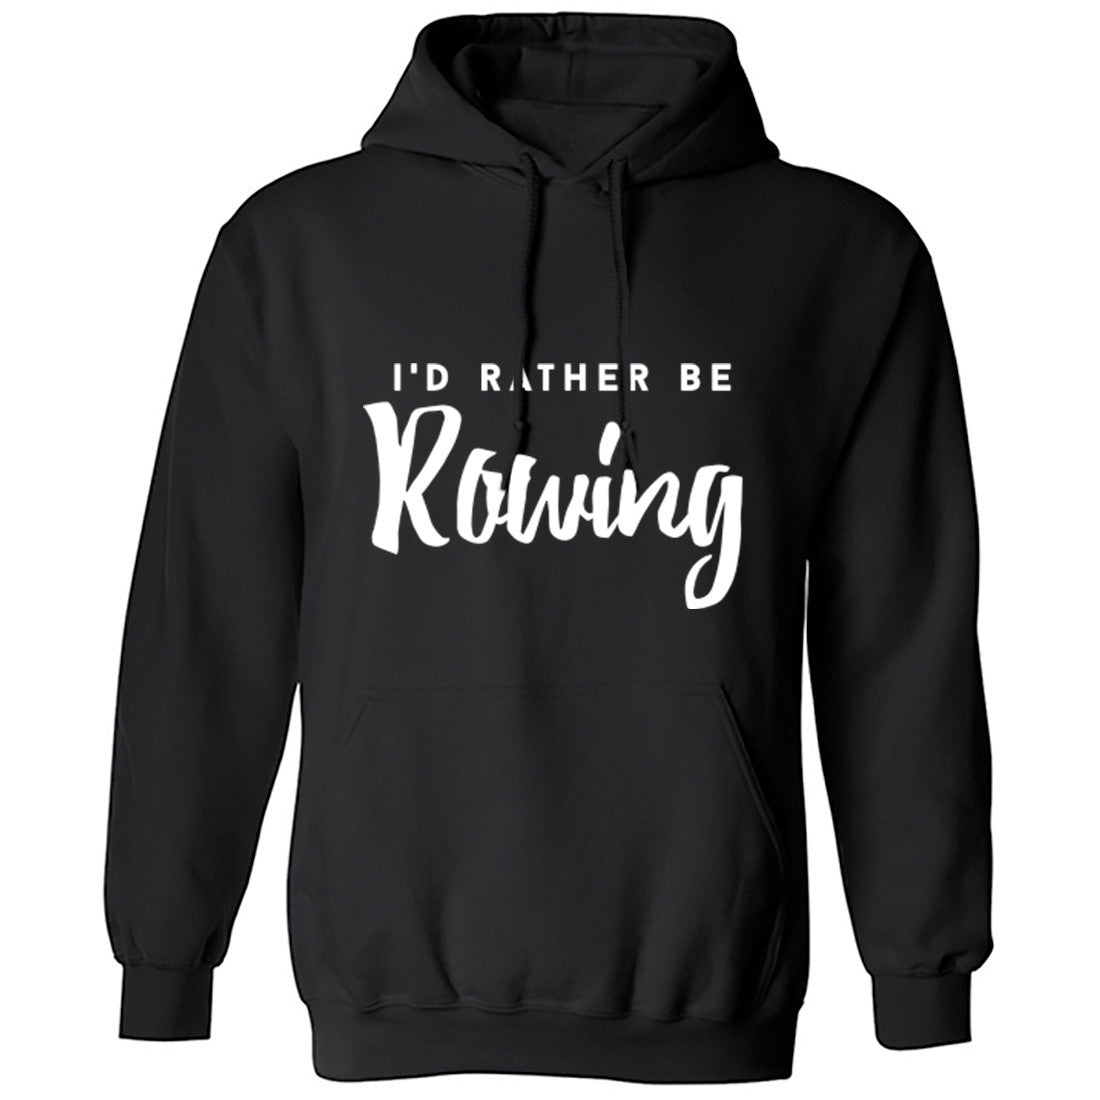 I'd Rather Be Rowing Unisex Hoodie K0223 - Illustrated Identity Ltd.